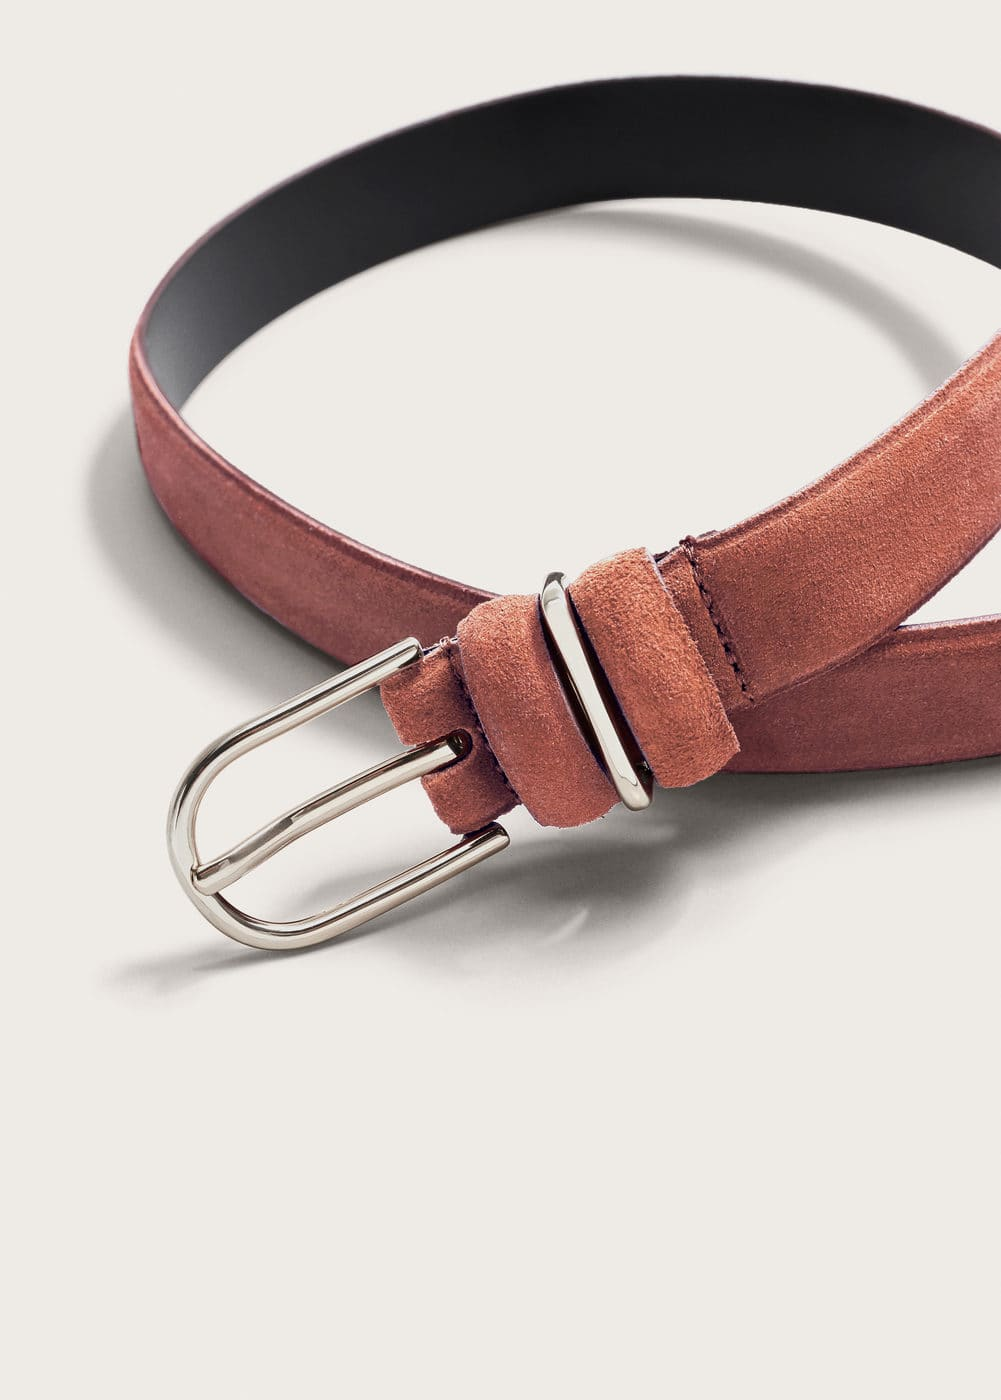 Buckle leather belt | VIOLETA BY MANGO